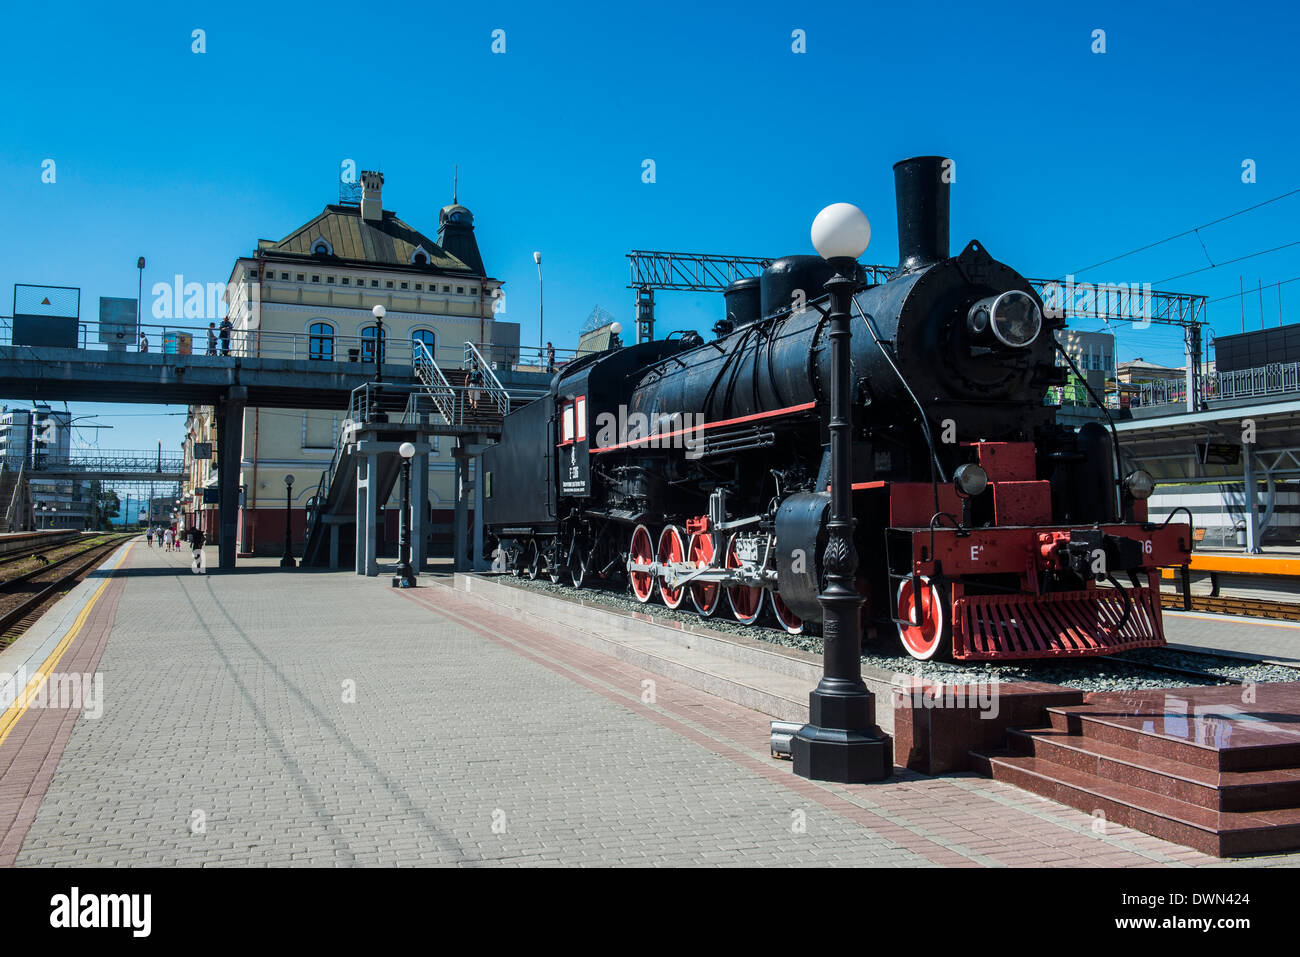 Old steam engine at the final railway station of the Trans-Siberian railway in Vladivostok, Russia, Eurasia - Stock Image